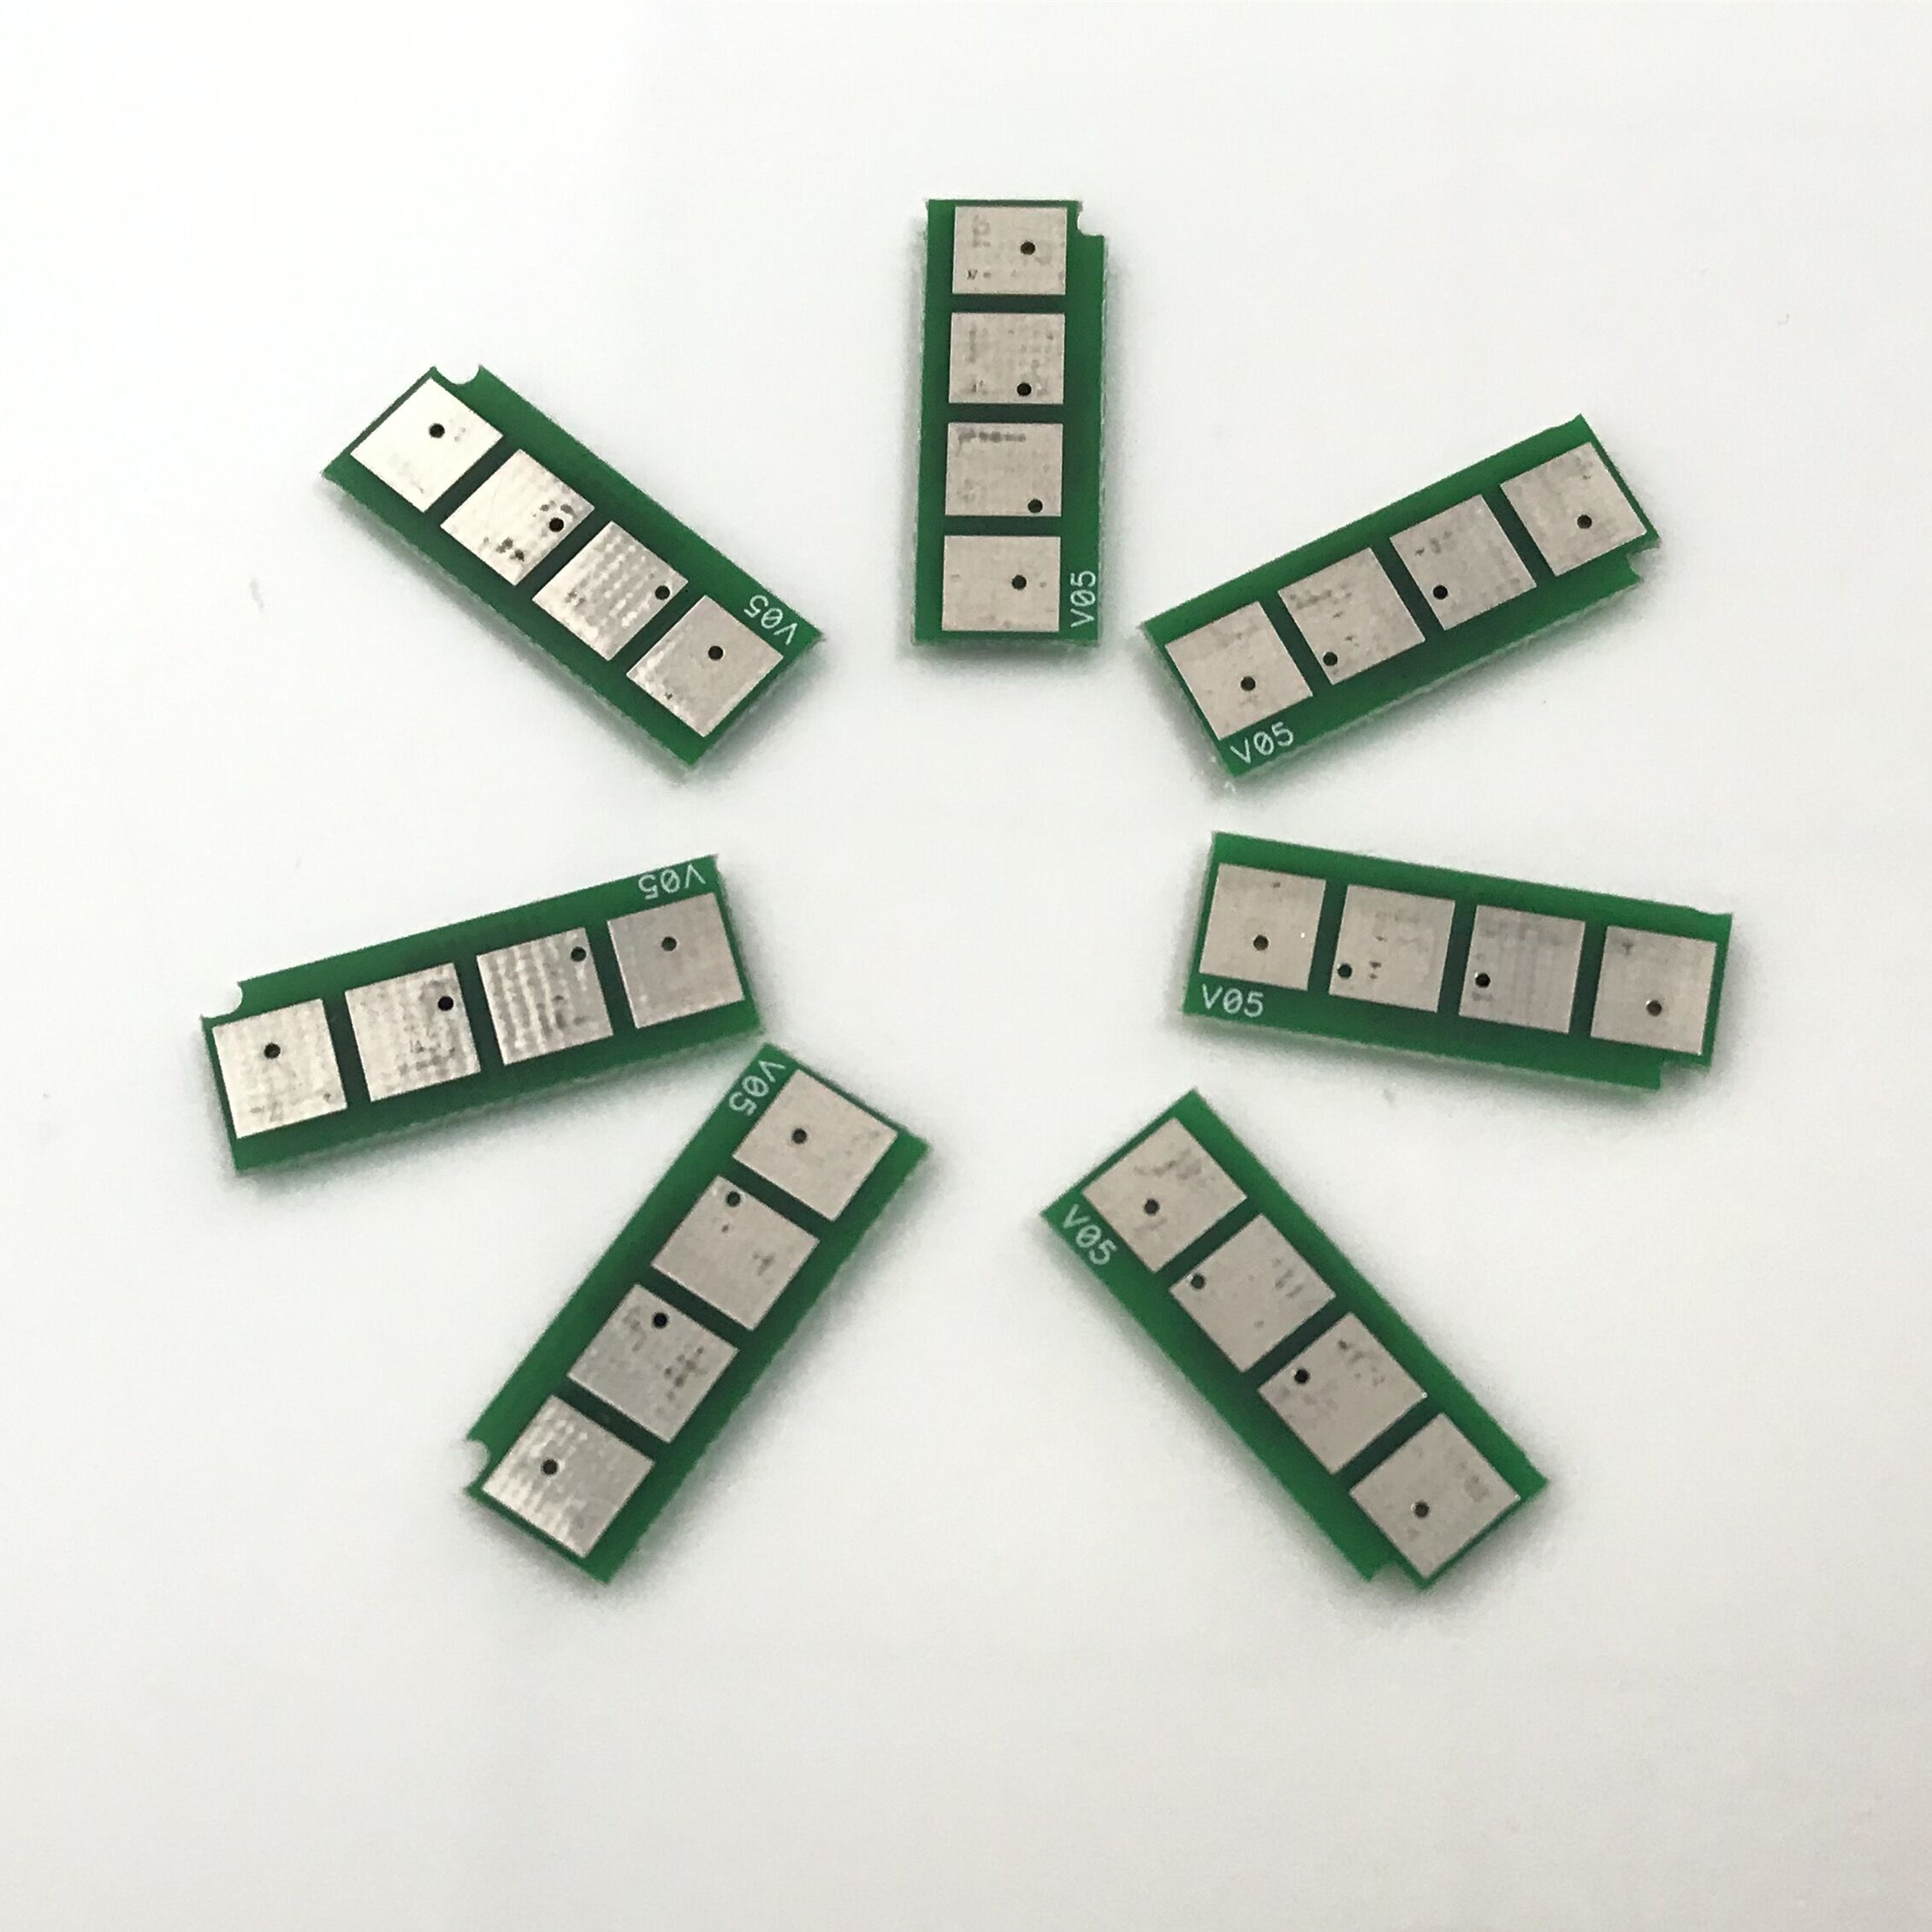 Auto Reset Chip For Pantum PC-211RB PC-230R For Pantum P2200 P2207 P2500 P2505 P2500W M6500 M6505 M6550 M6600